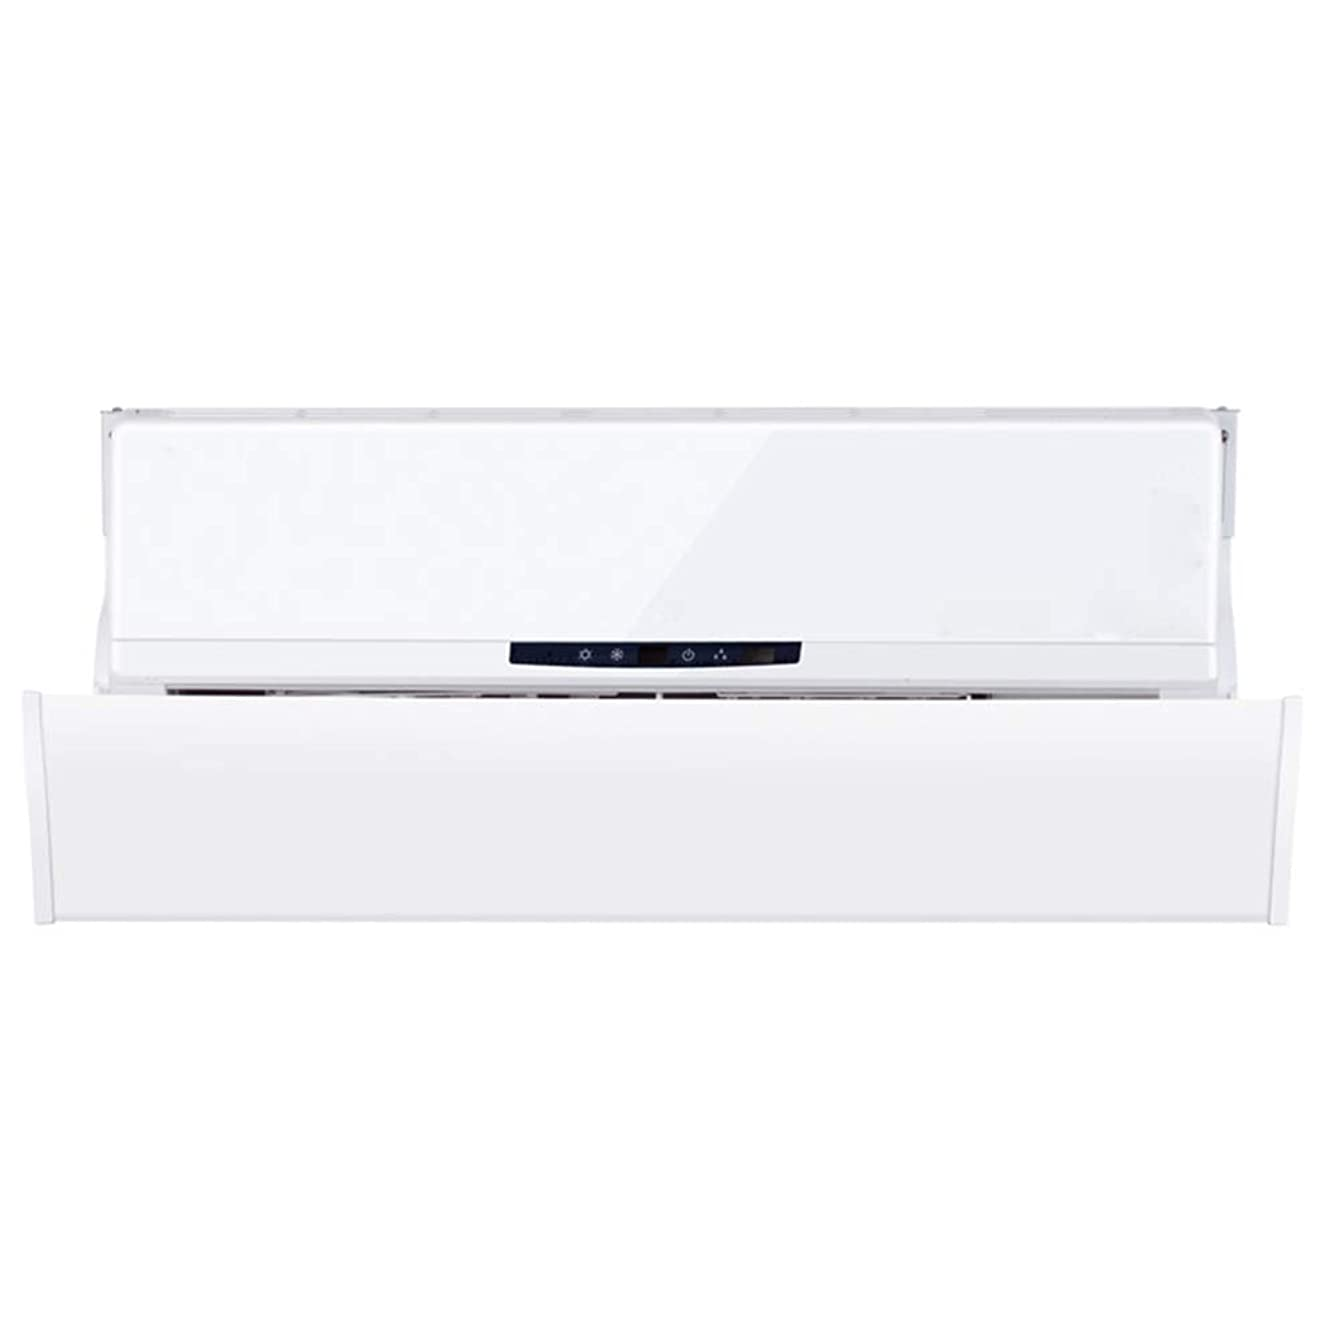 Furniture Air Conditioning Baffles, Wall-Mounted Air Conditioning Wind Deflector Common External Removable, Suitable for The Elderly Children Pregnant Women